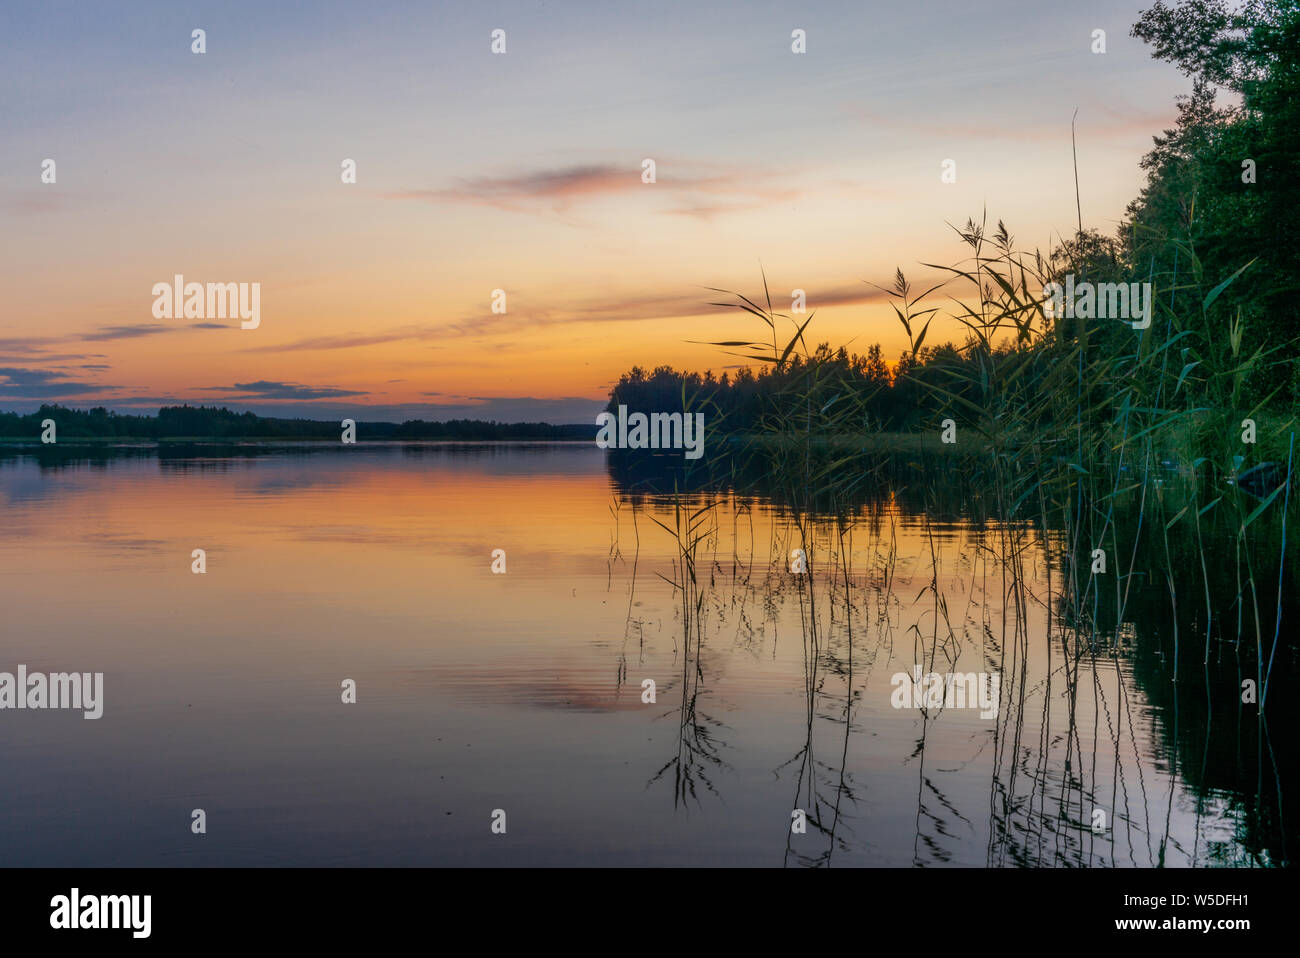 Reflections on the calm waters of the Saimaa lake in Finland at Sunset  - 5 Stock Photo